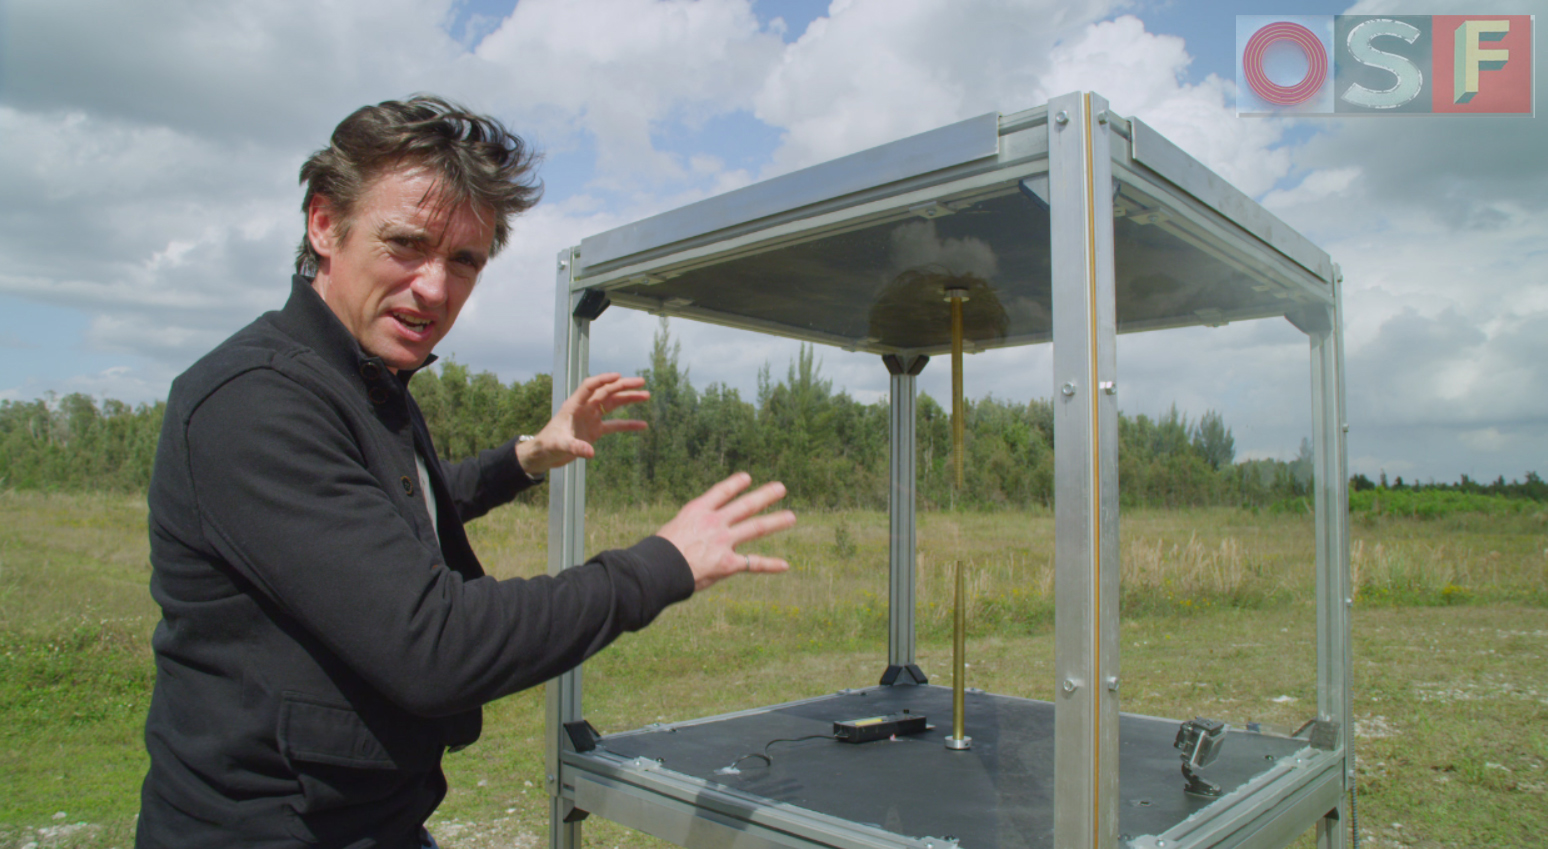 Richard Hammond explains the Franklin Box during filming for Wild Weather.